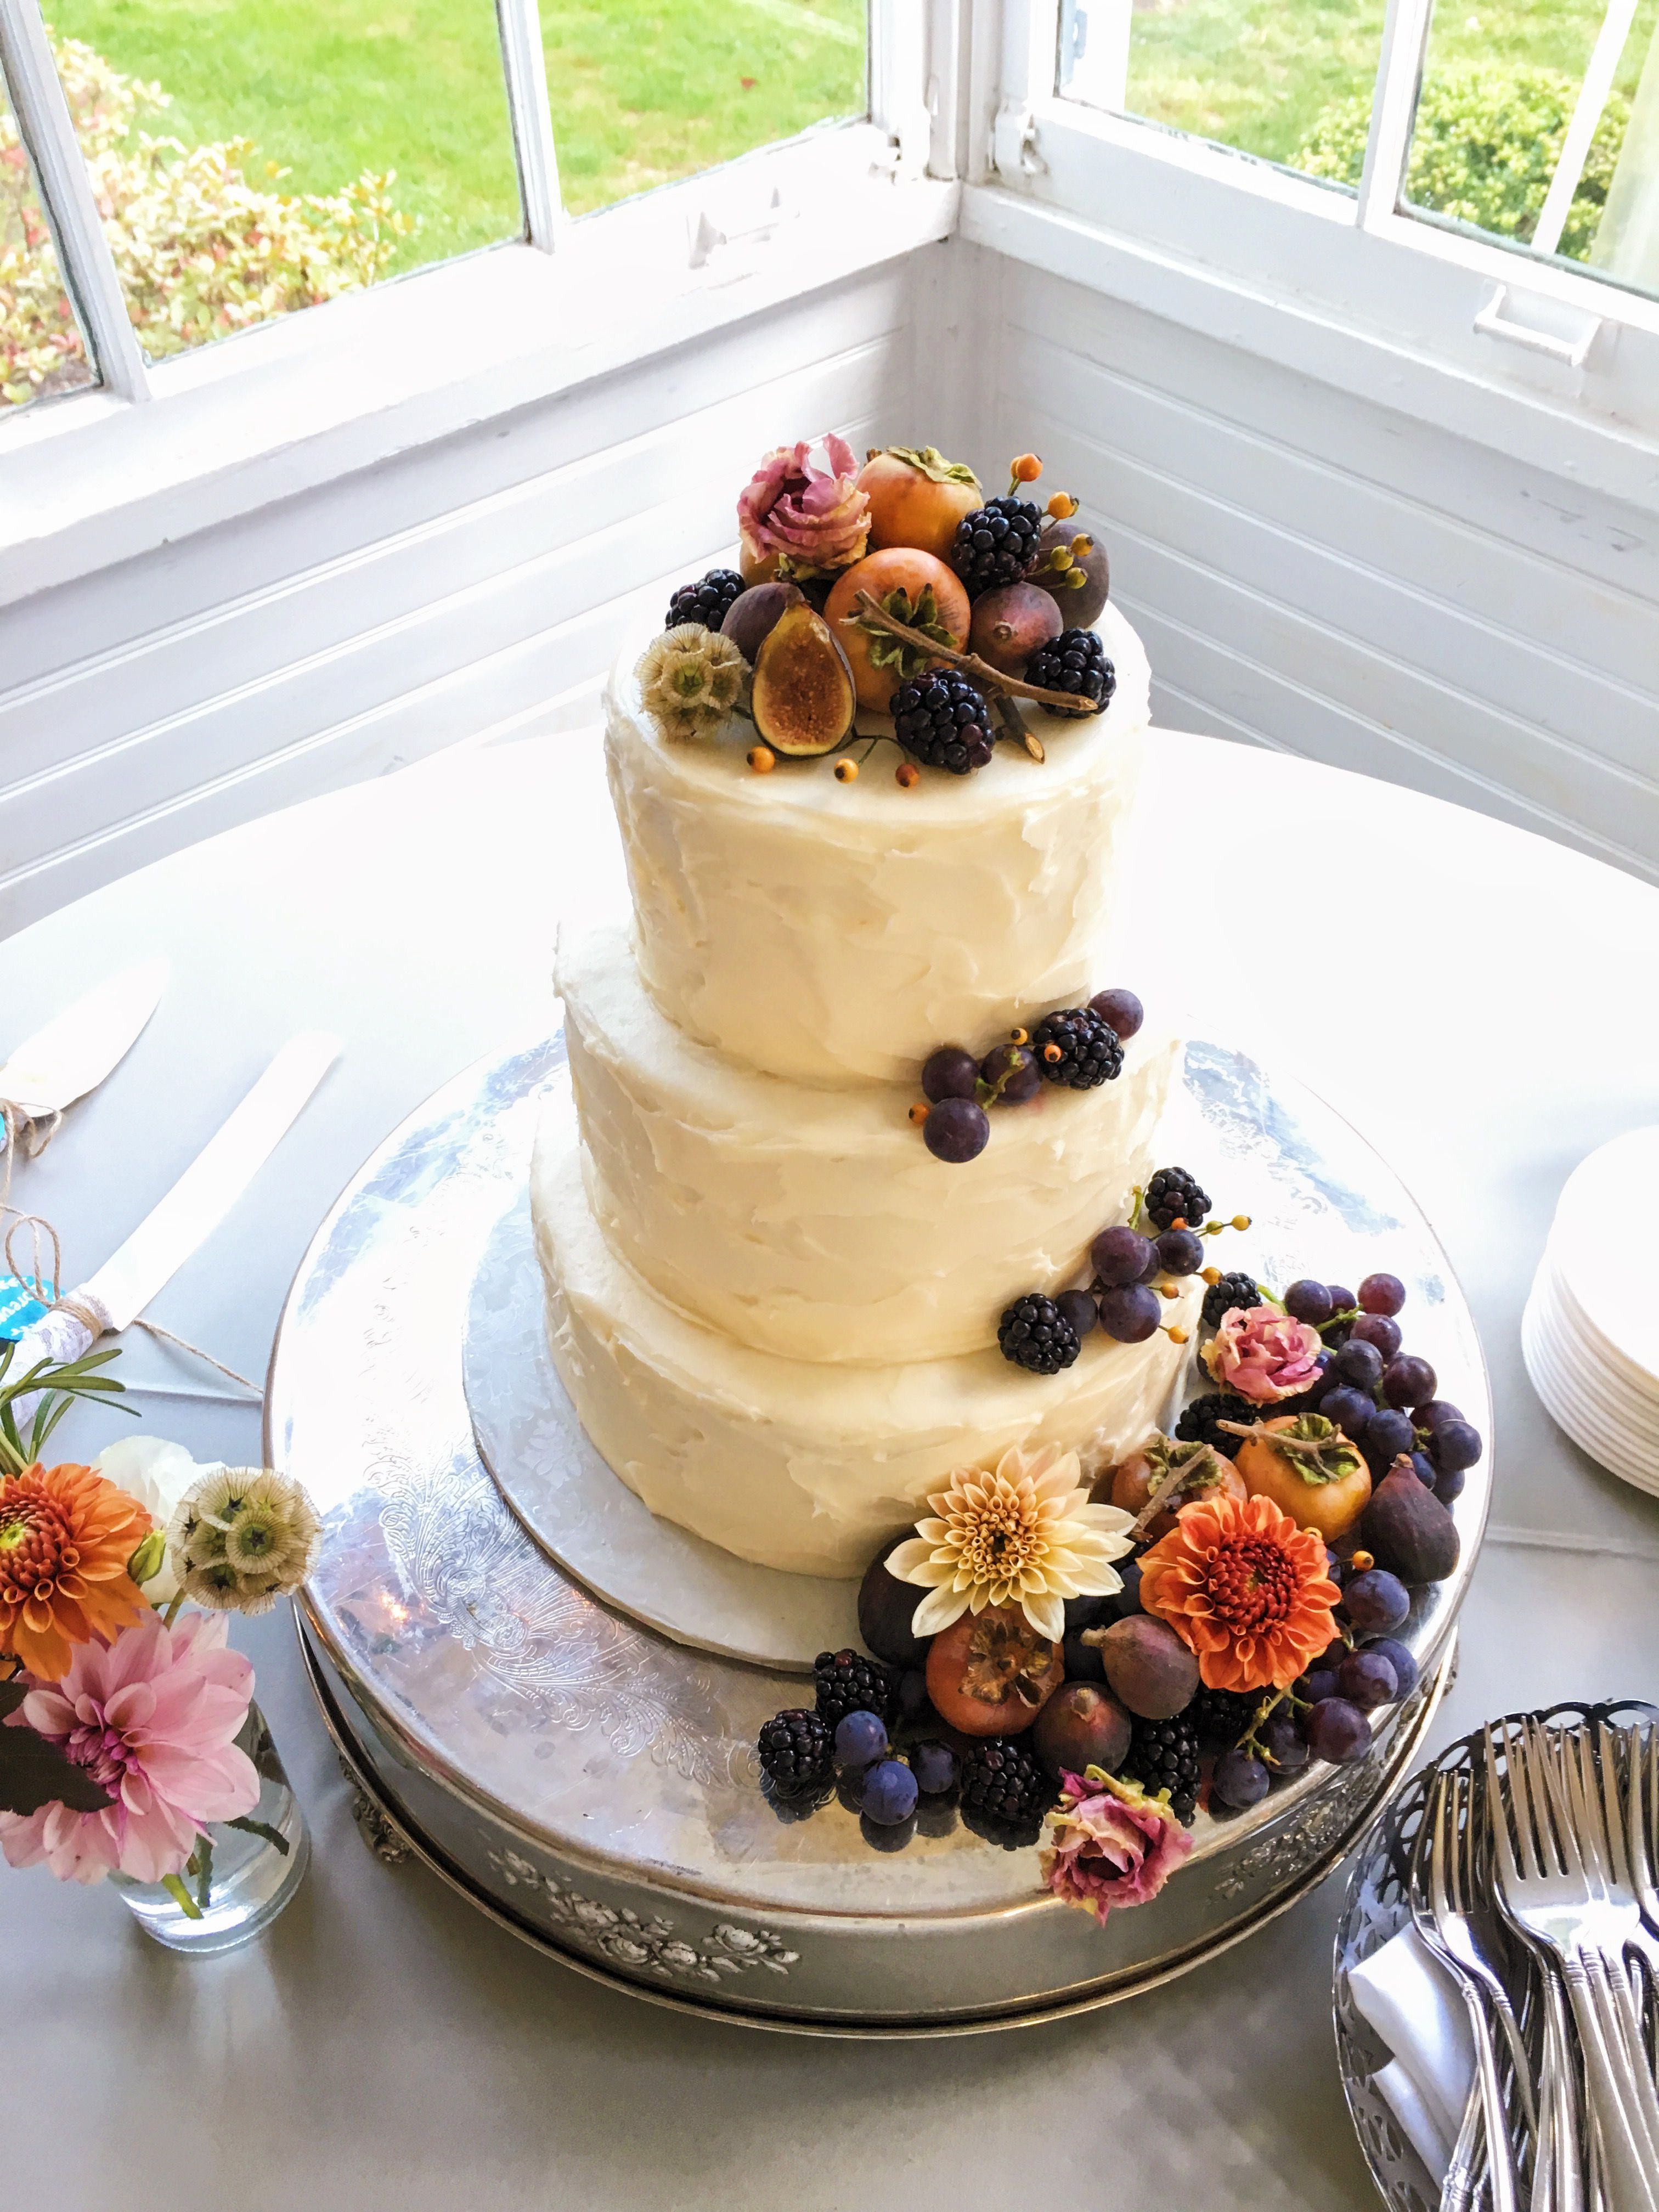 Autumn wedding cake with figs persimmons and concord